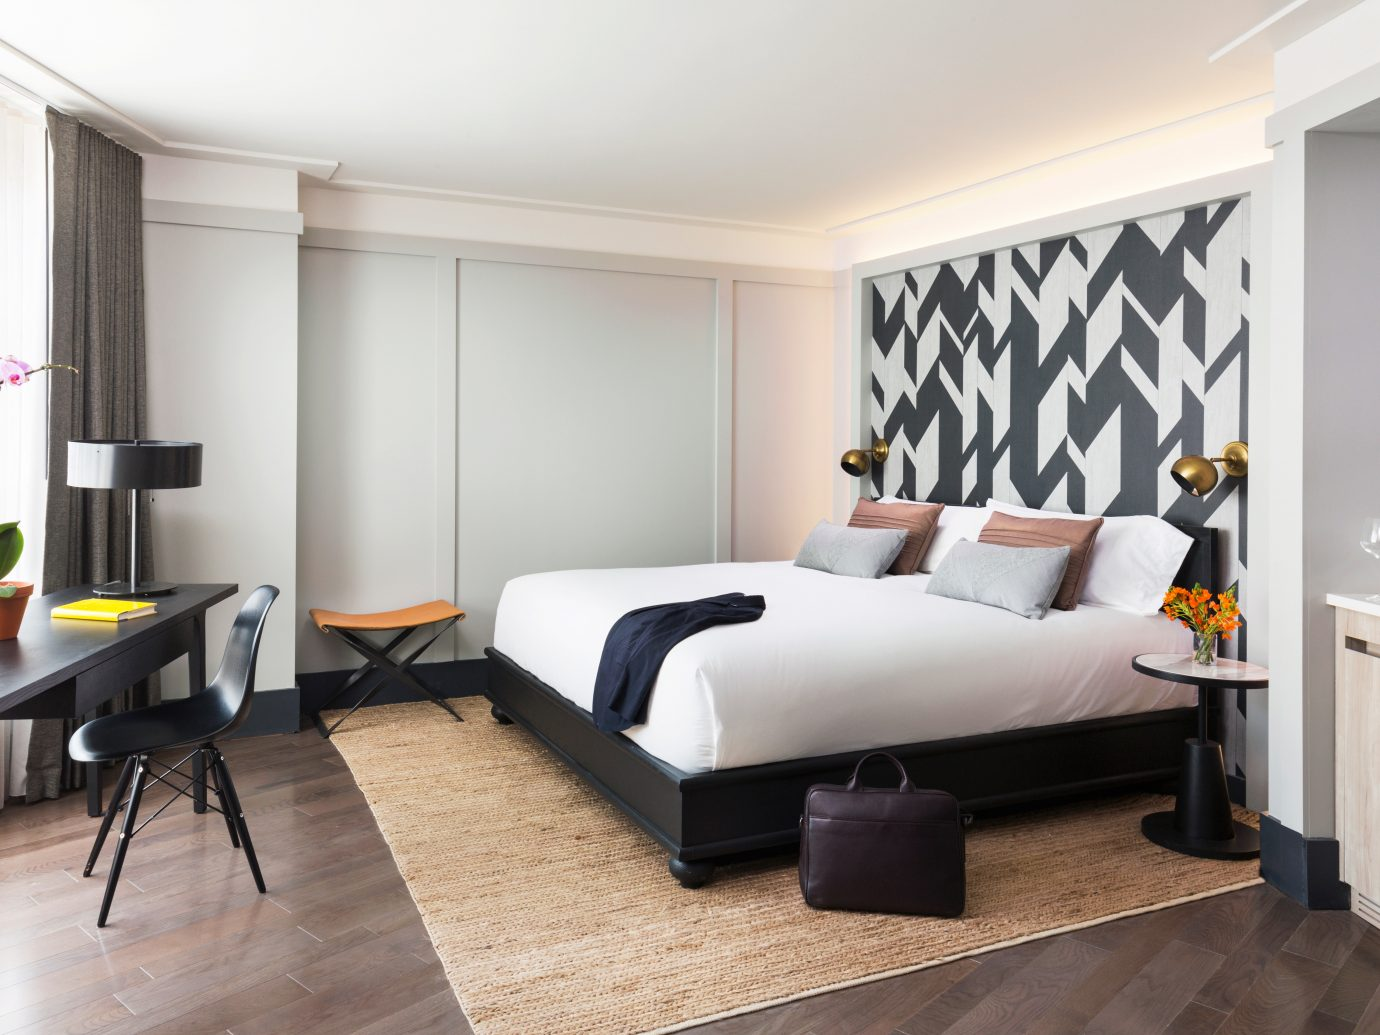 Bedroom City Hip Hotels Modern indoor floor wall room ceiling Living property living room furniture interior design real estate home Design Suite laminate flooring apartment flat window covering wood area decorated